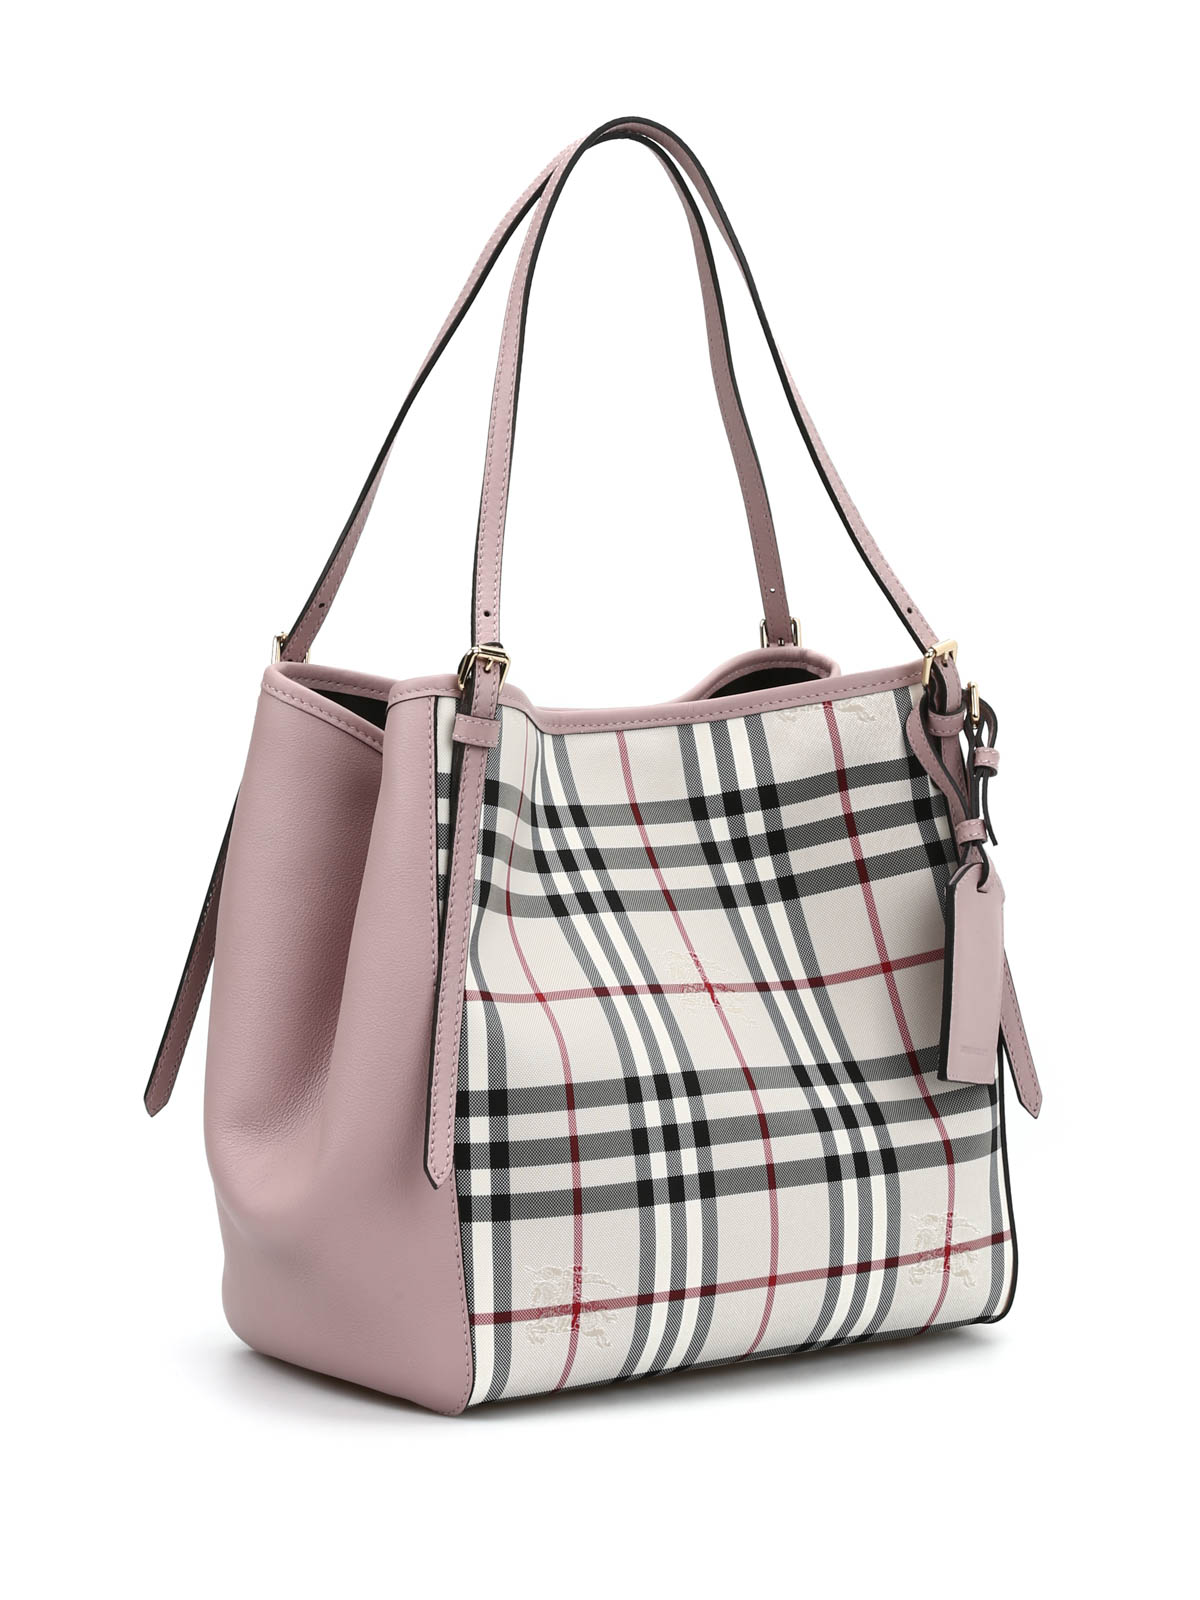 Burberry Totes Bags Online Small Canter Tote